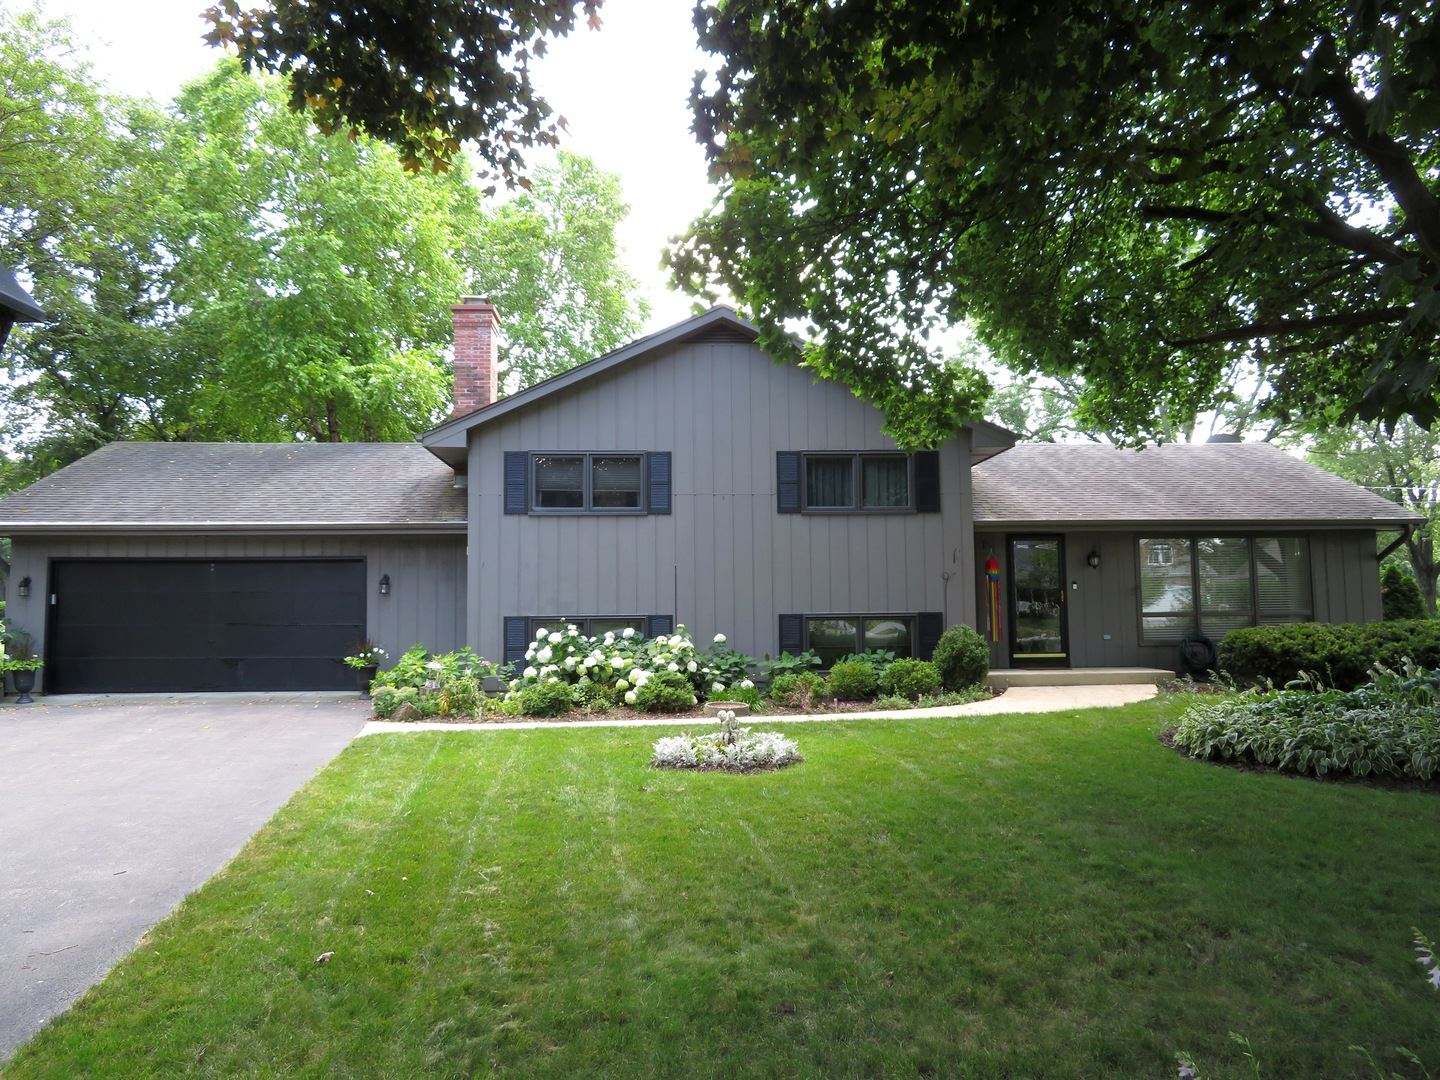 29W435 FORESTVIEW Drive, Warrenville, IL 60555 - #: 10675773